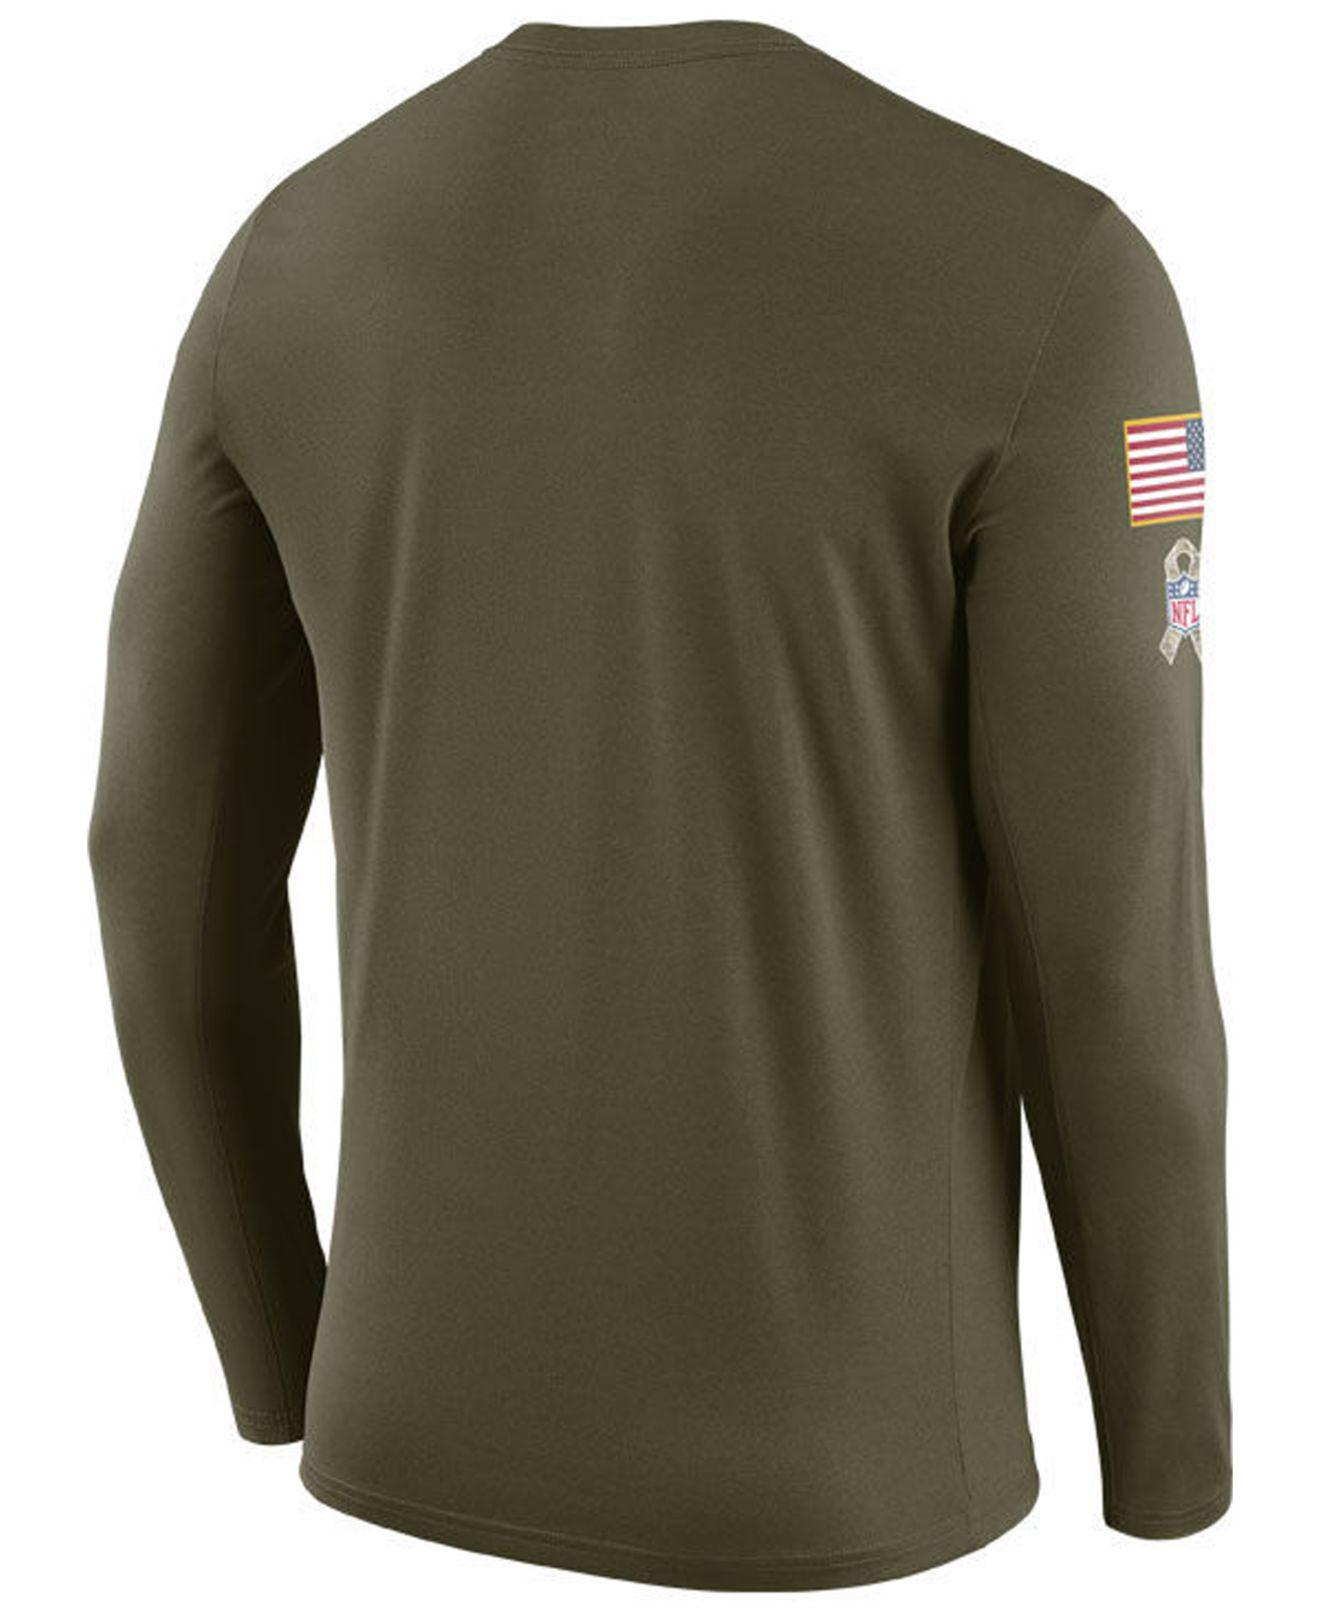 Lyst - Nike Indianapolis Colts Salute To Service Legend Long Sleeve T-shirt  in Green for Men ce56c60ed